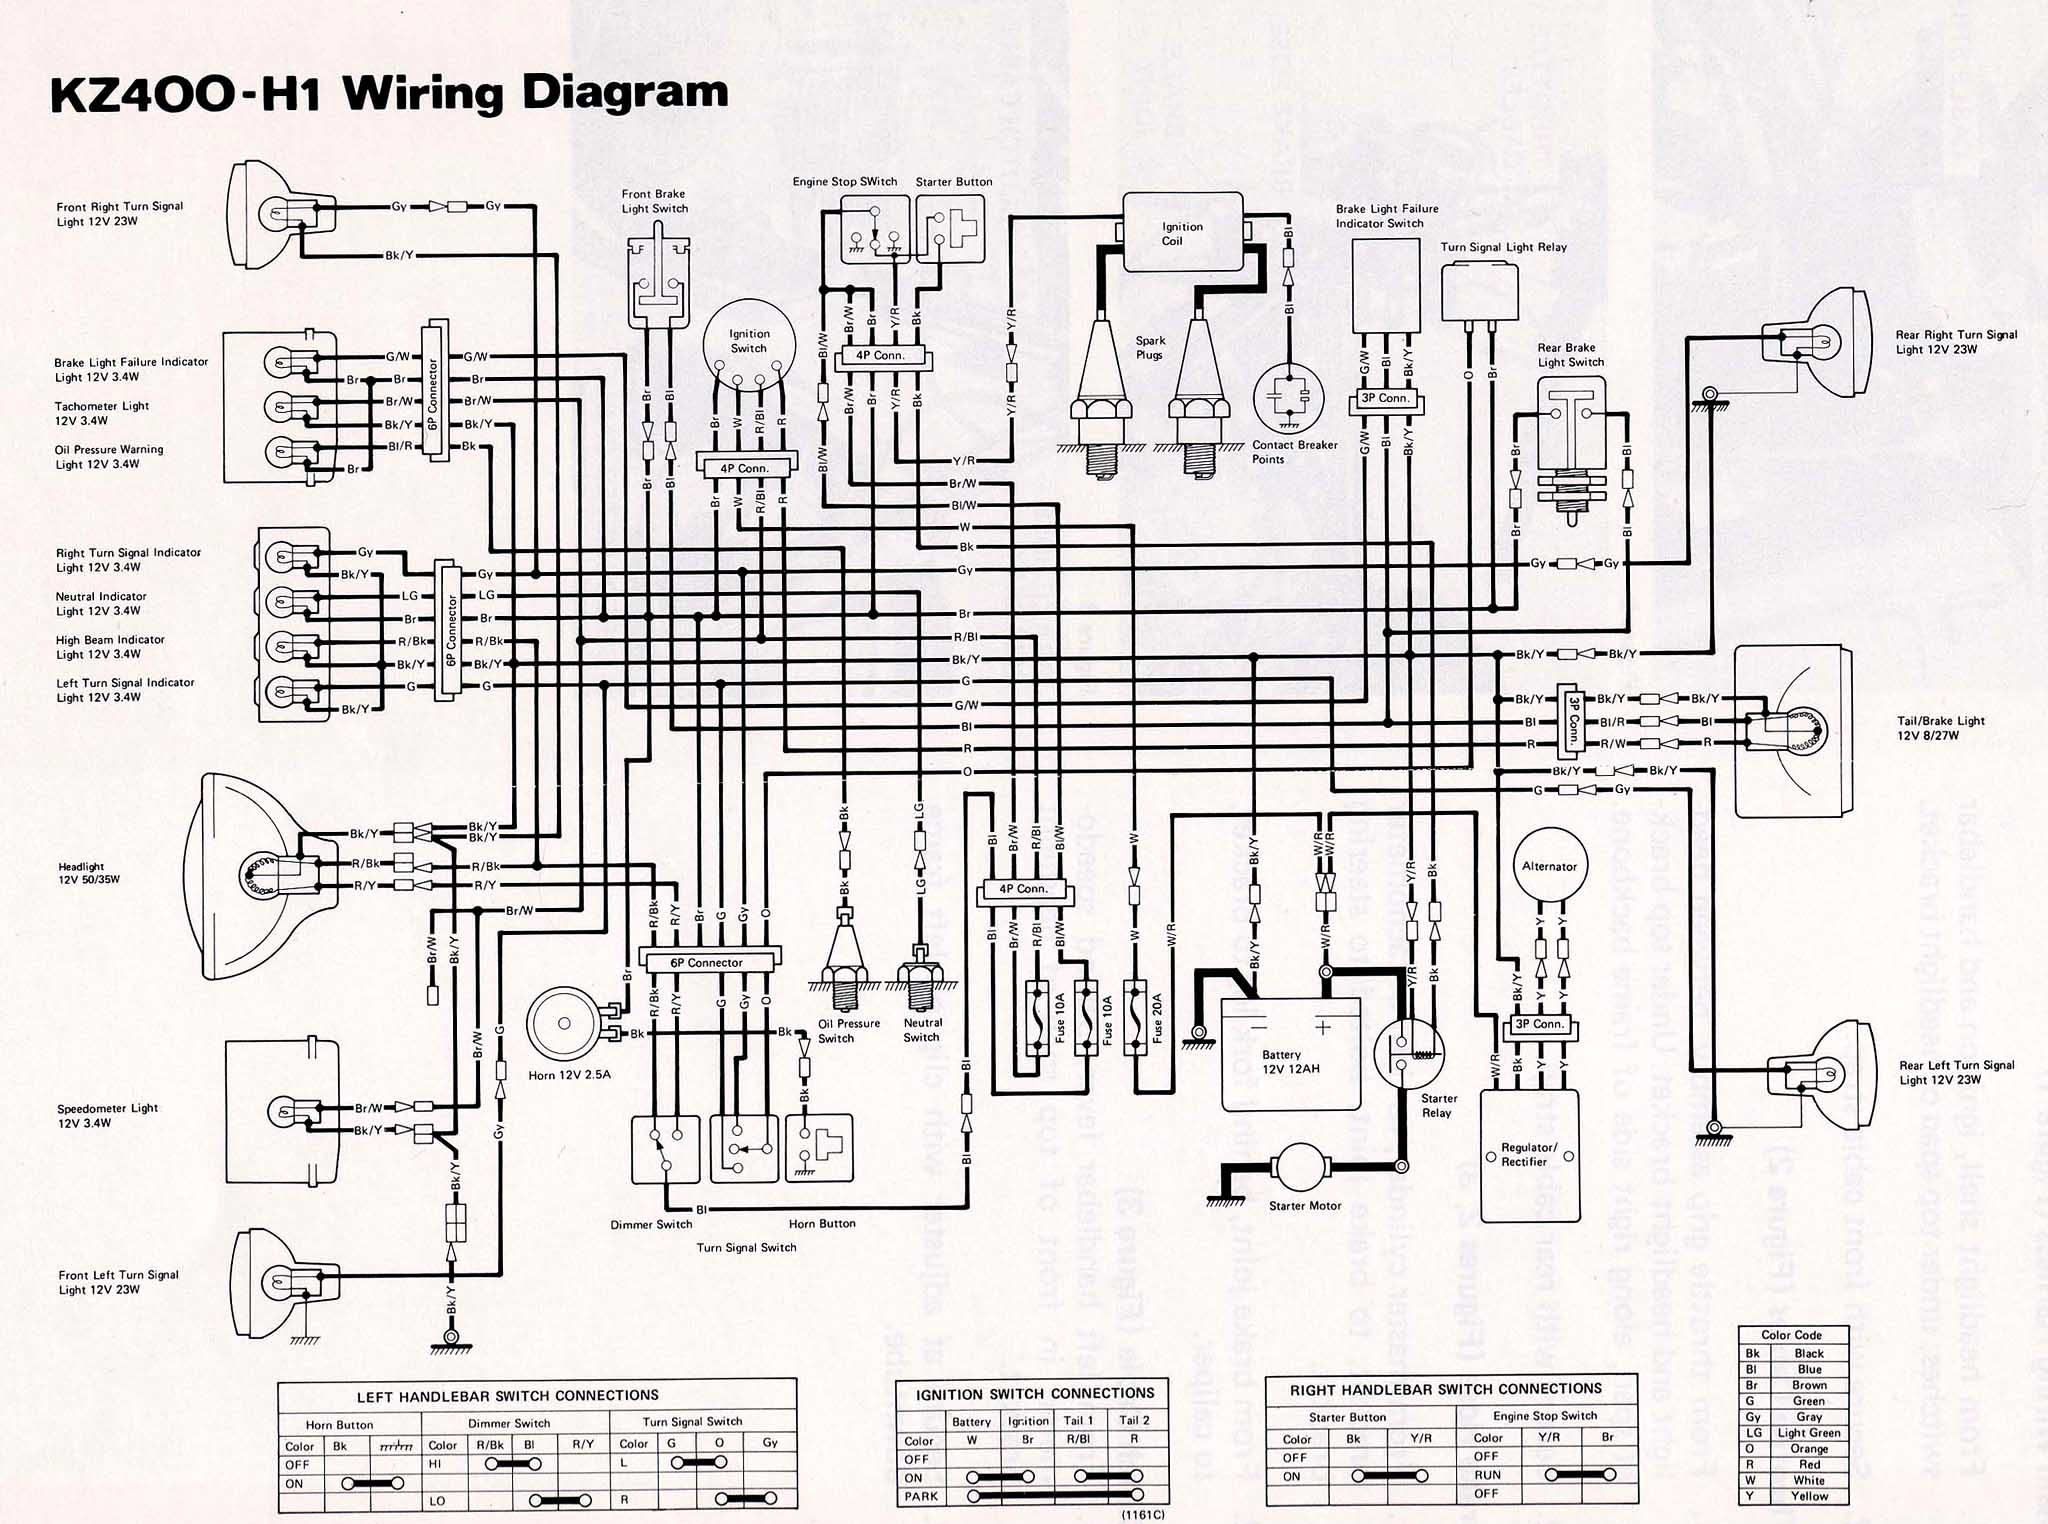 1981 Kawasaki 440 Ltd Wiring Diagram : 36 Wiring Diagram